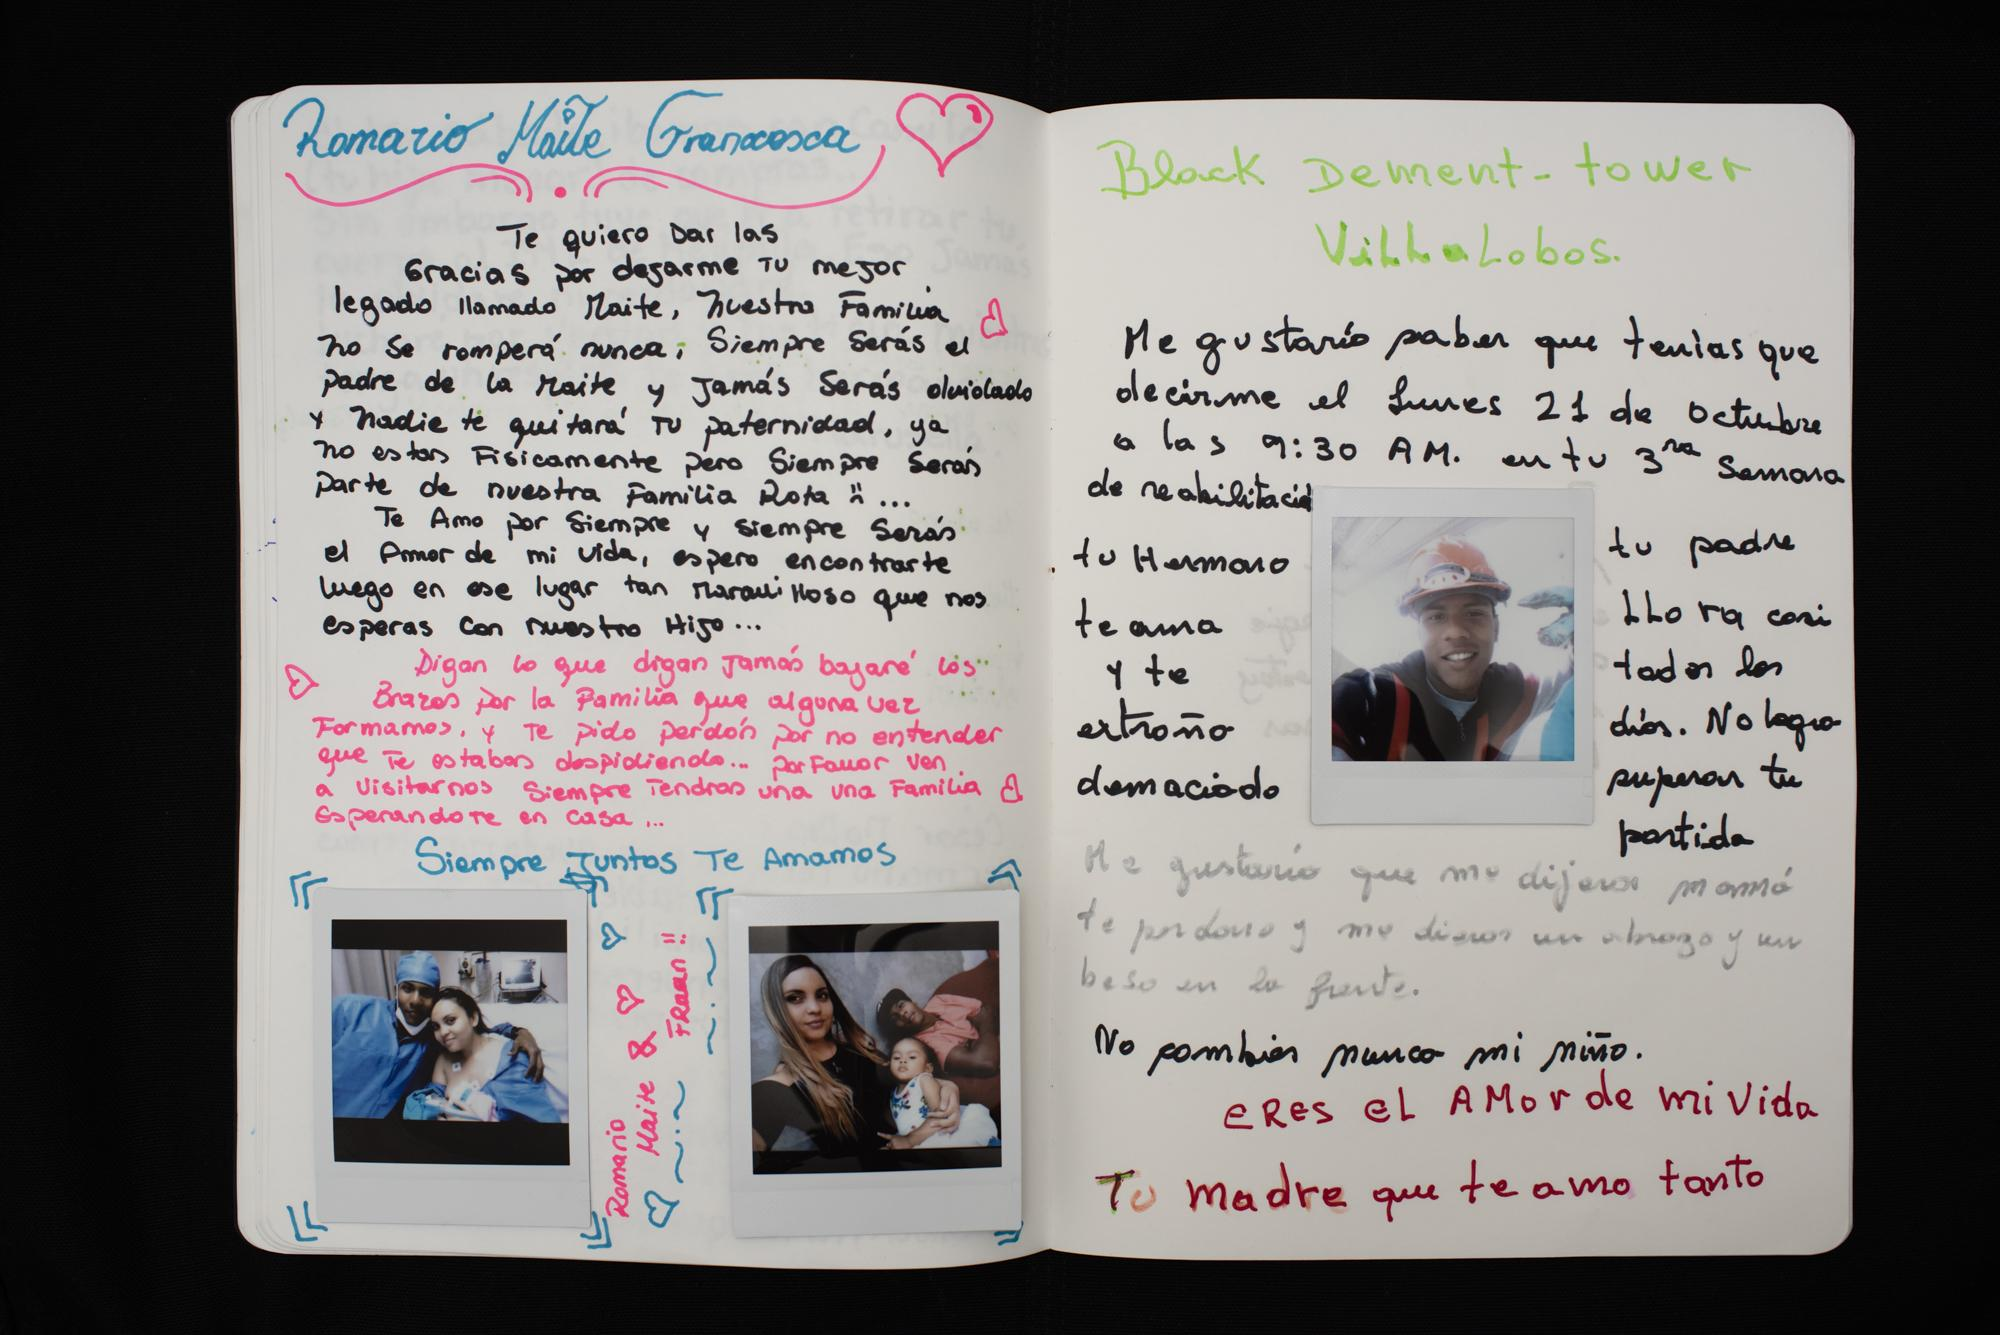 A family letter to the memory of Romario.